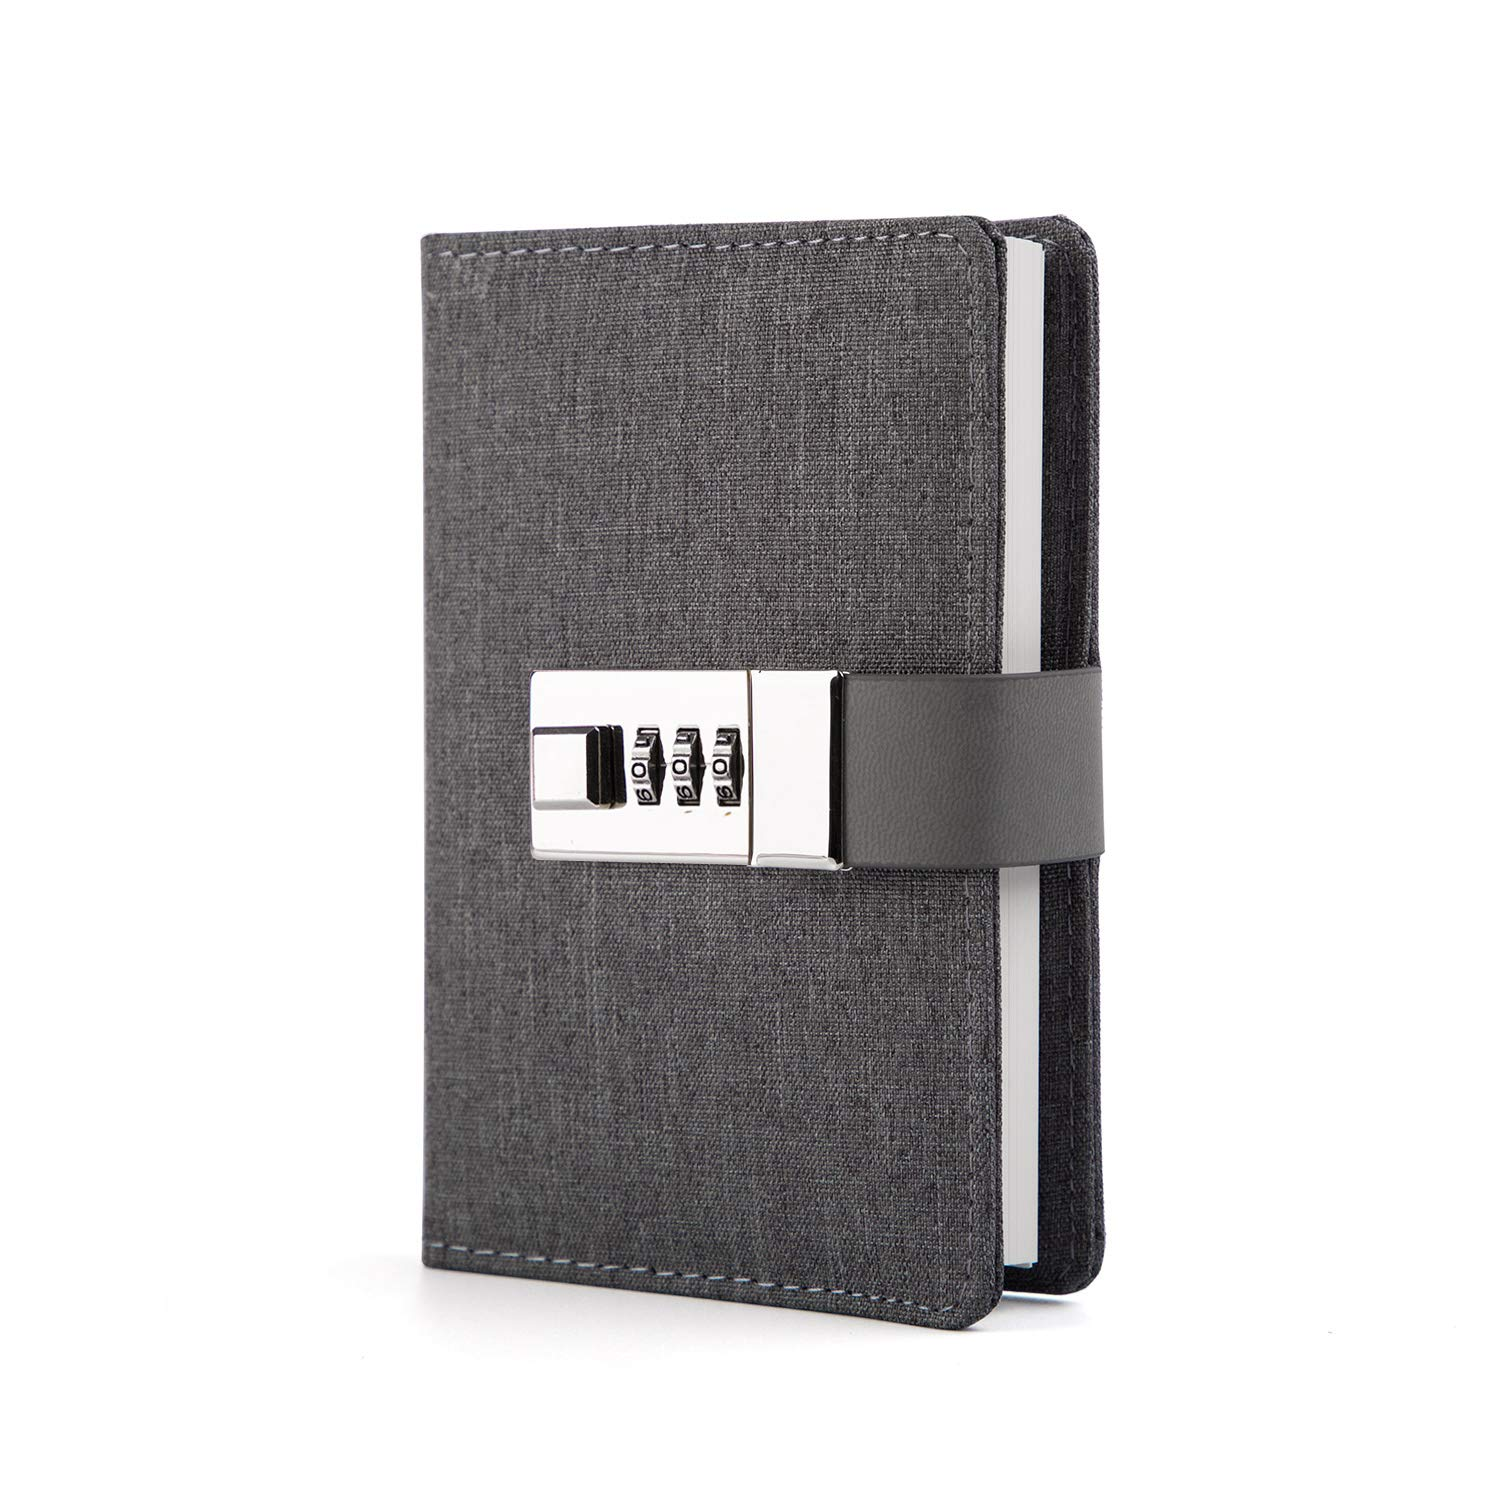 Lock Journal Combination Lock Writing Travel Diary a7 Mini Notebook